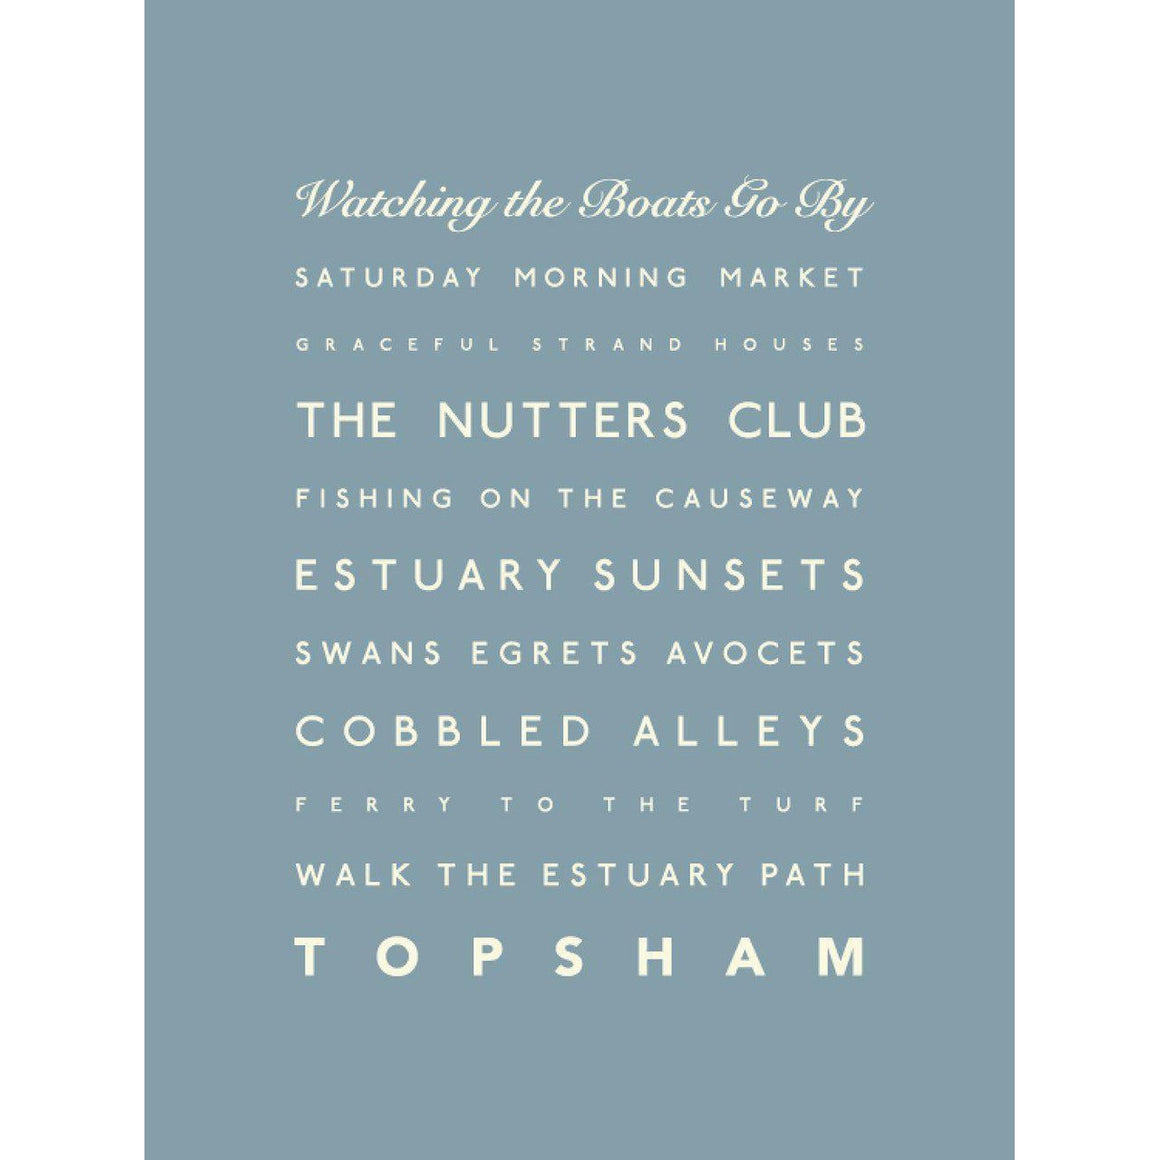 Topsham Typographic Travel and Seaside Print by SeaKisses